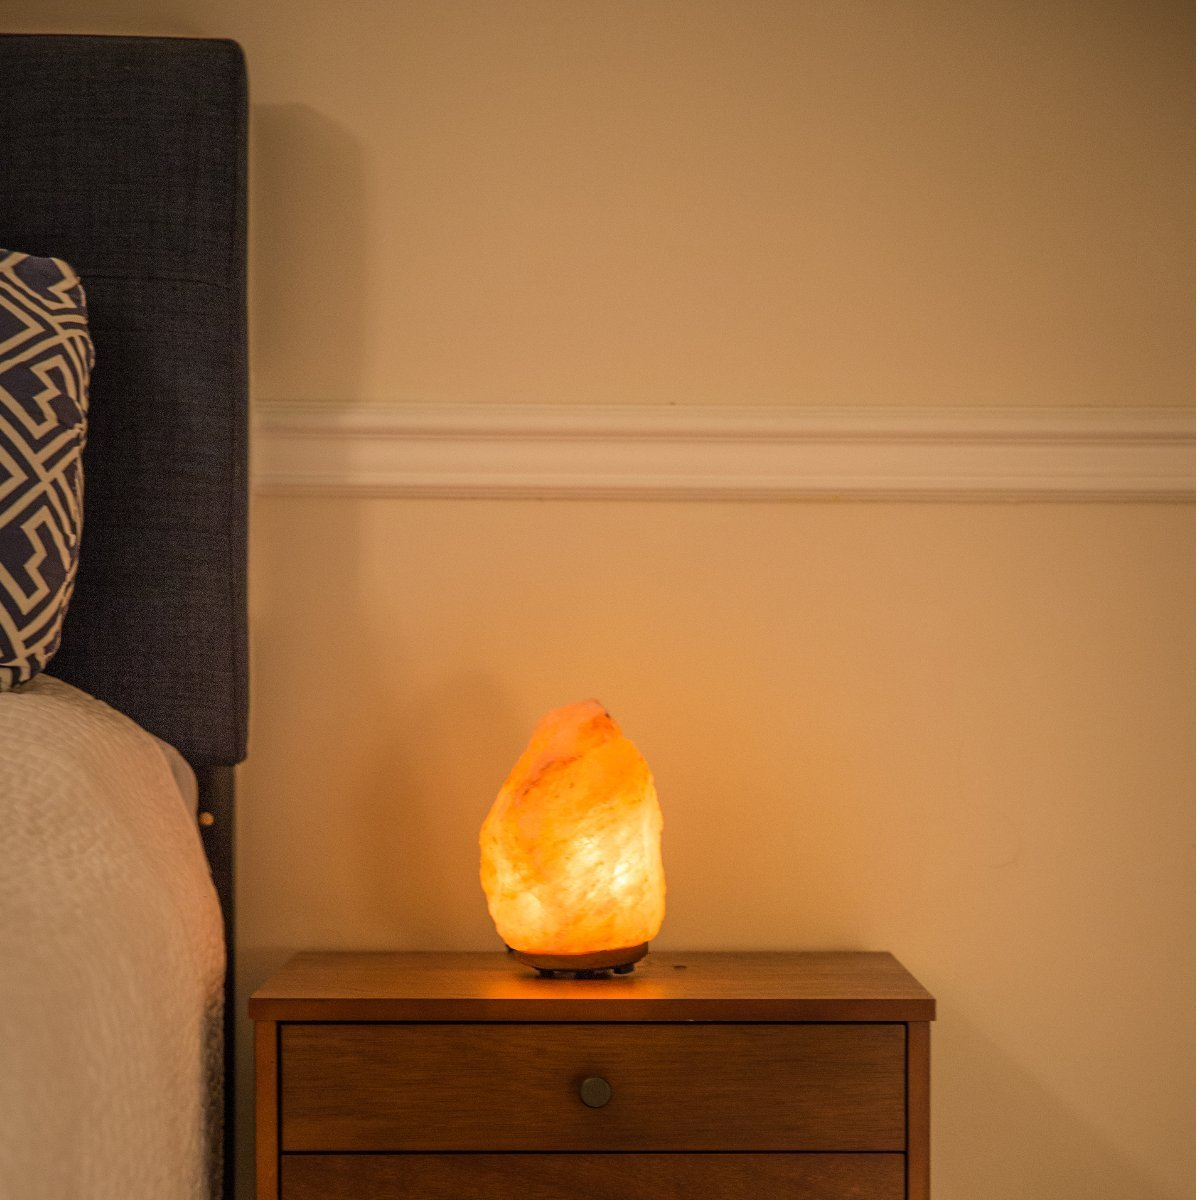 Mineralamp NSL-101 Natural Himalayan Hand Carved Salt Lamp with Indian Rosewood Base, Bulb And Dimmer Control, Medium Size, 8-11 lbs, 7.5-10'' Height by Mineralamp (Image #5)